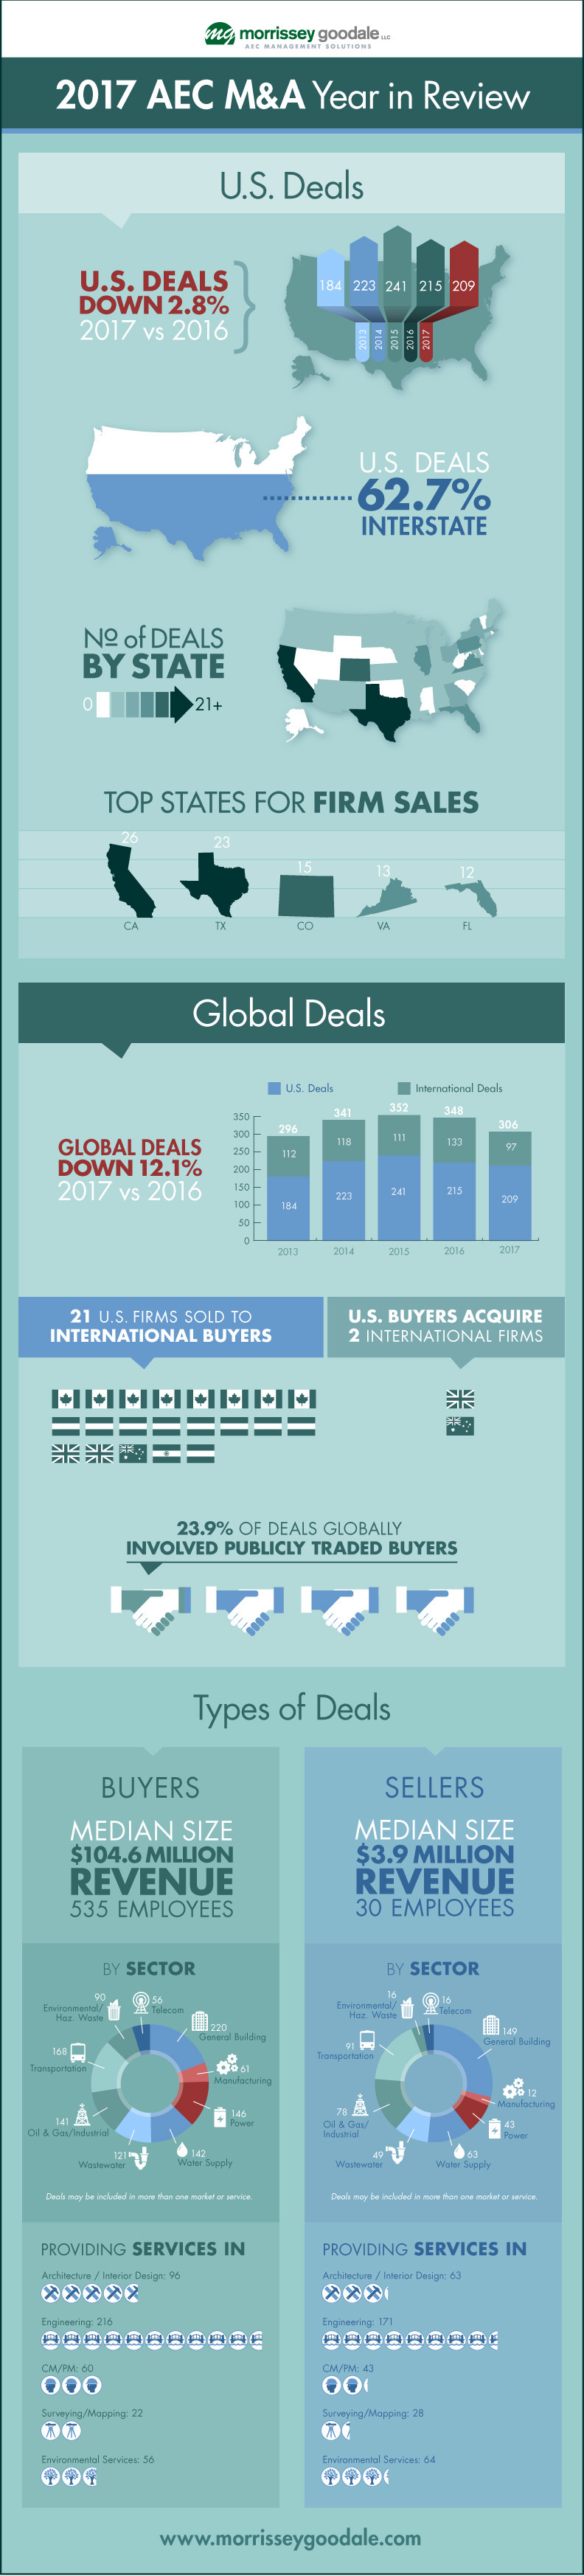 2017 AEC M&A Year in Review Infographic